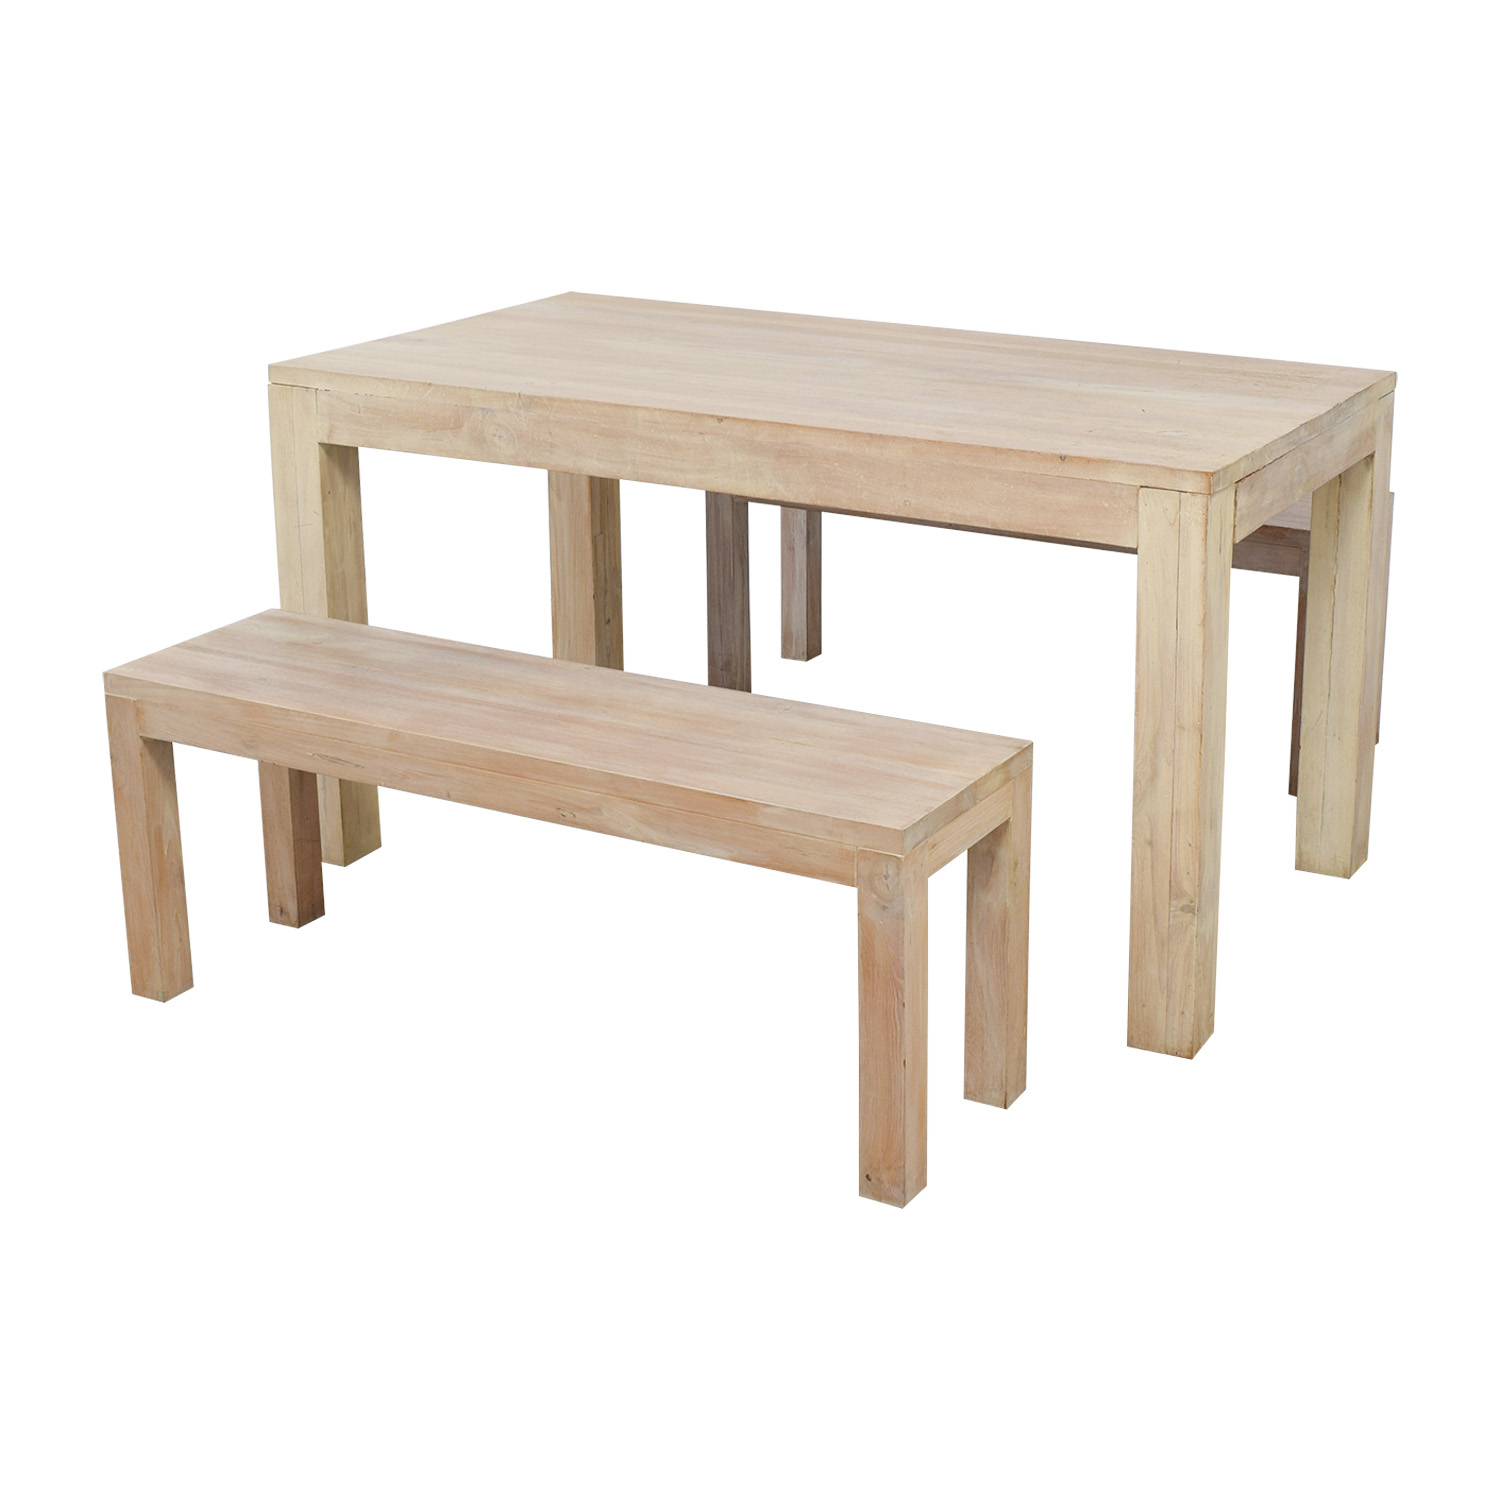 TREE Hong Kong TREE Hong Kong Reclaimed Raw Oak Wood Dining Table with Benches for sale